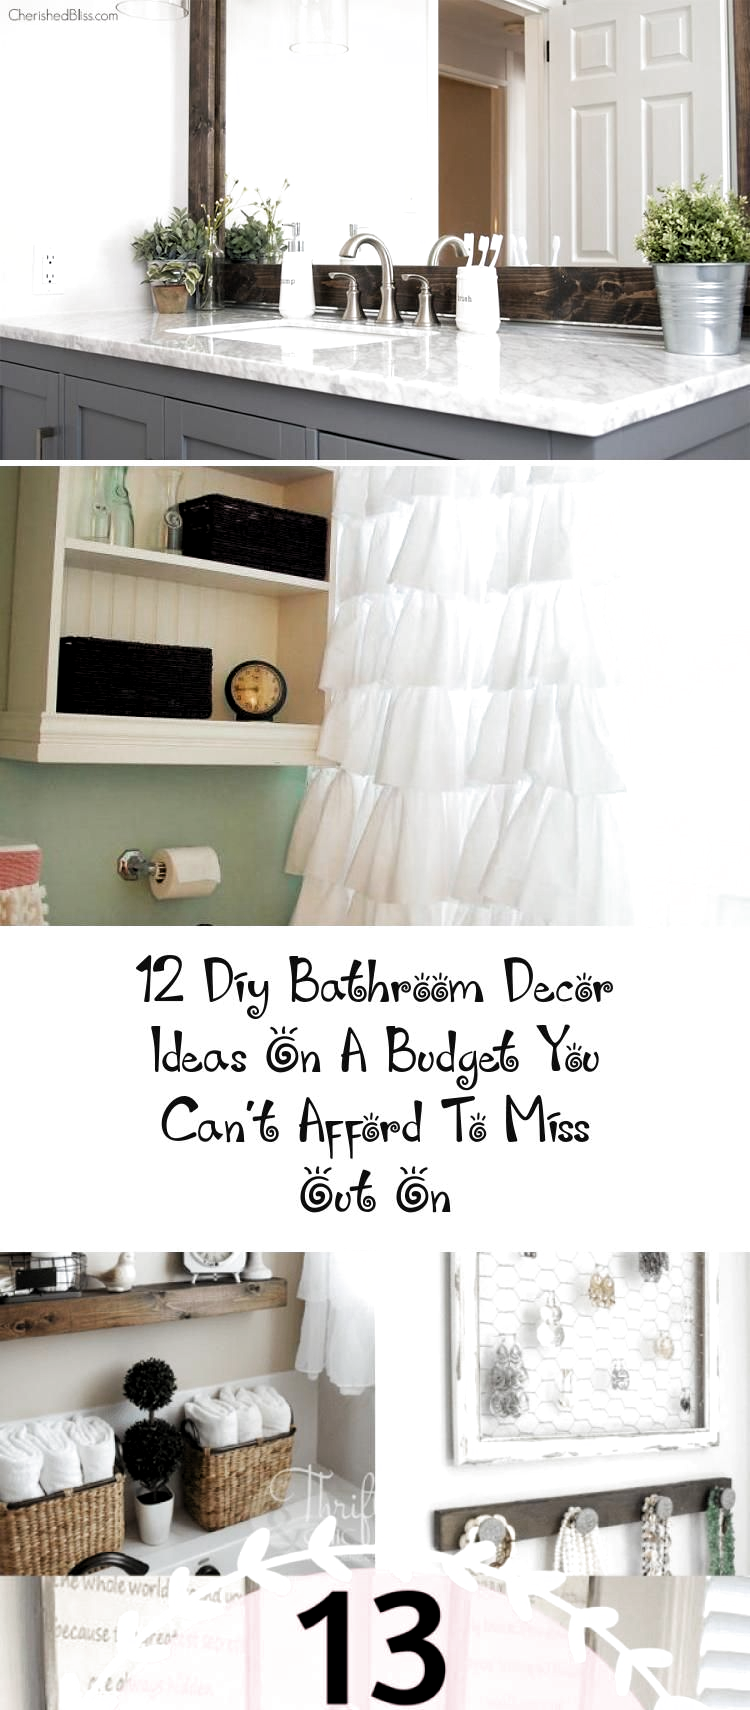 12 Diy Bathroom Decor Ideas On A Budget You Can't Afford To Miss Out On - Decor,  #Afford #Bathroom #Budget #Decor #DIY #diygardencheapdollarstores #ideas